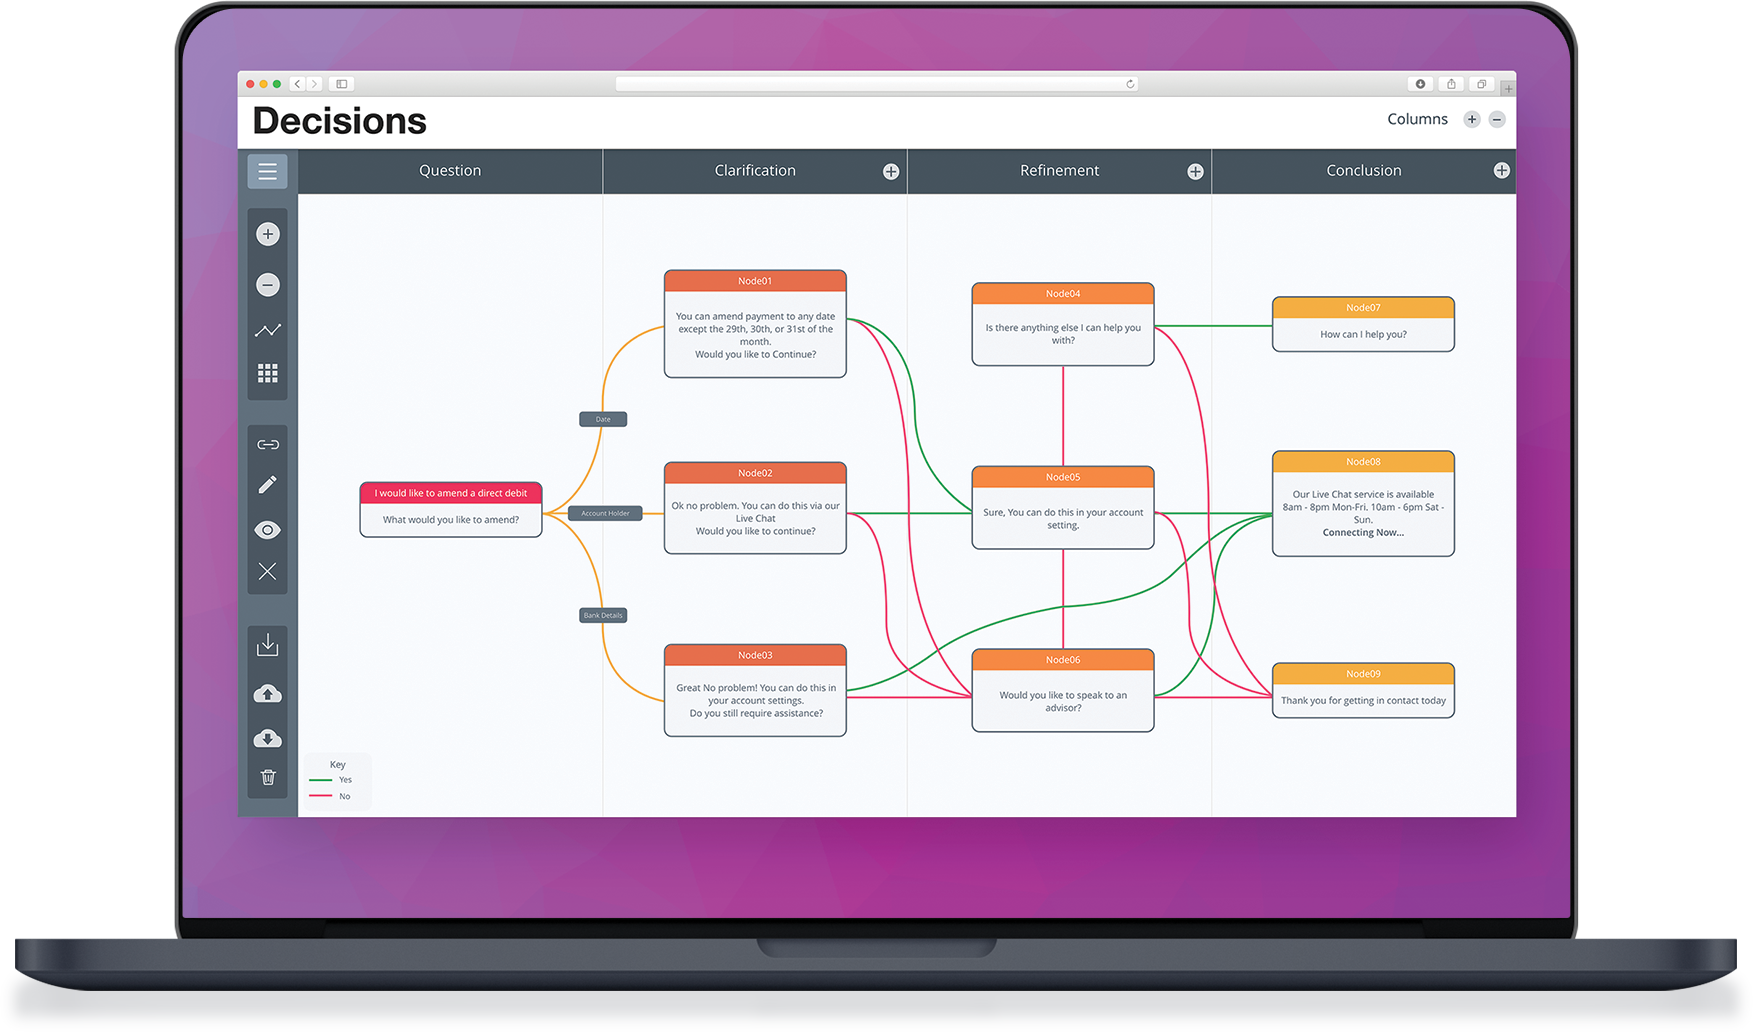 An image to show Synthetix Decisions interface